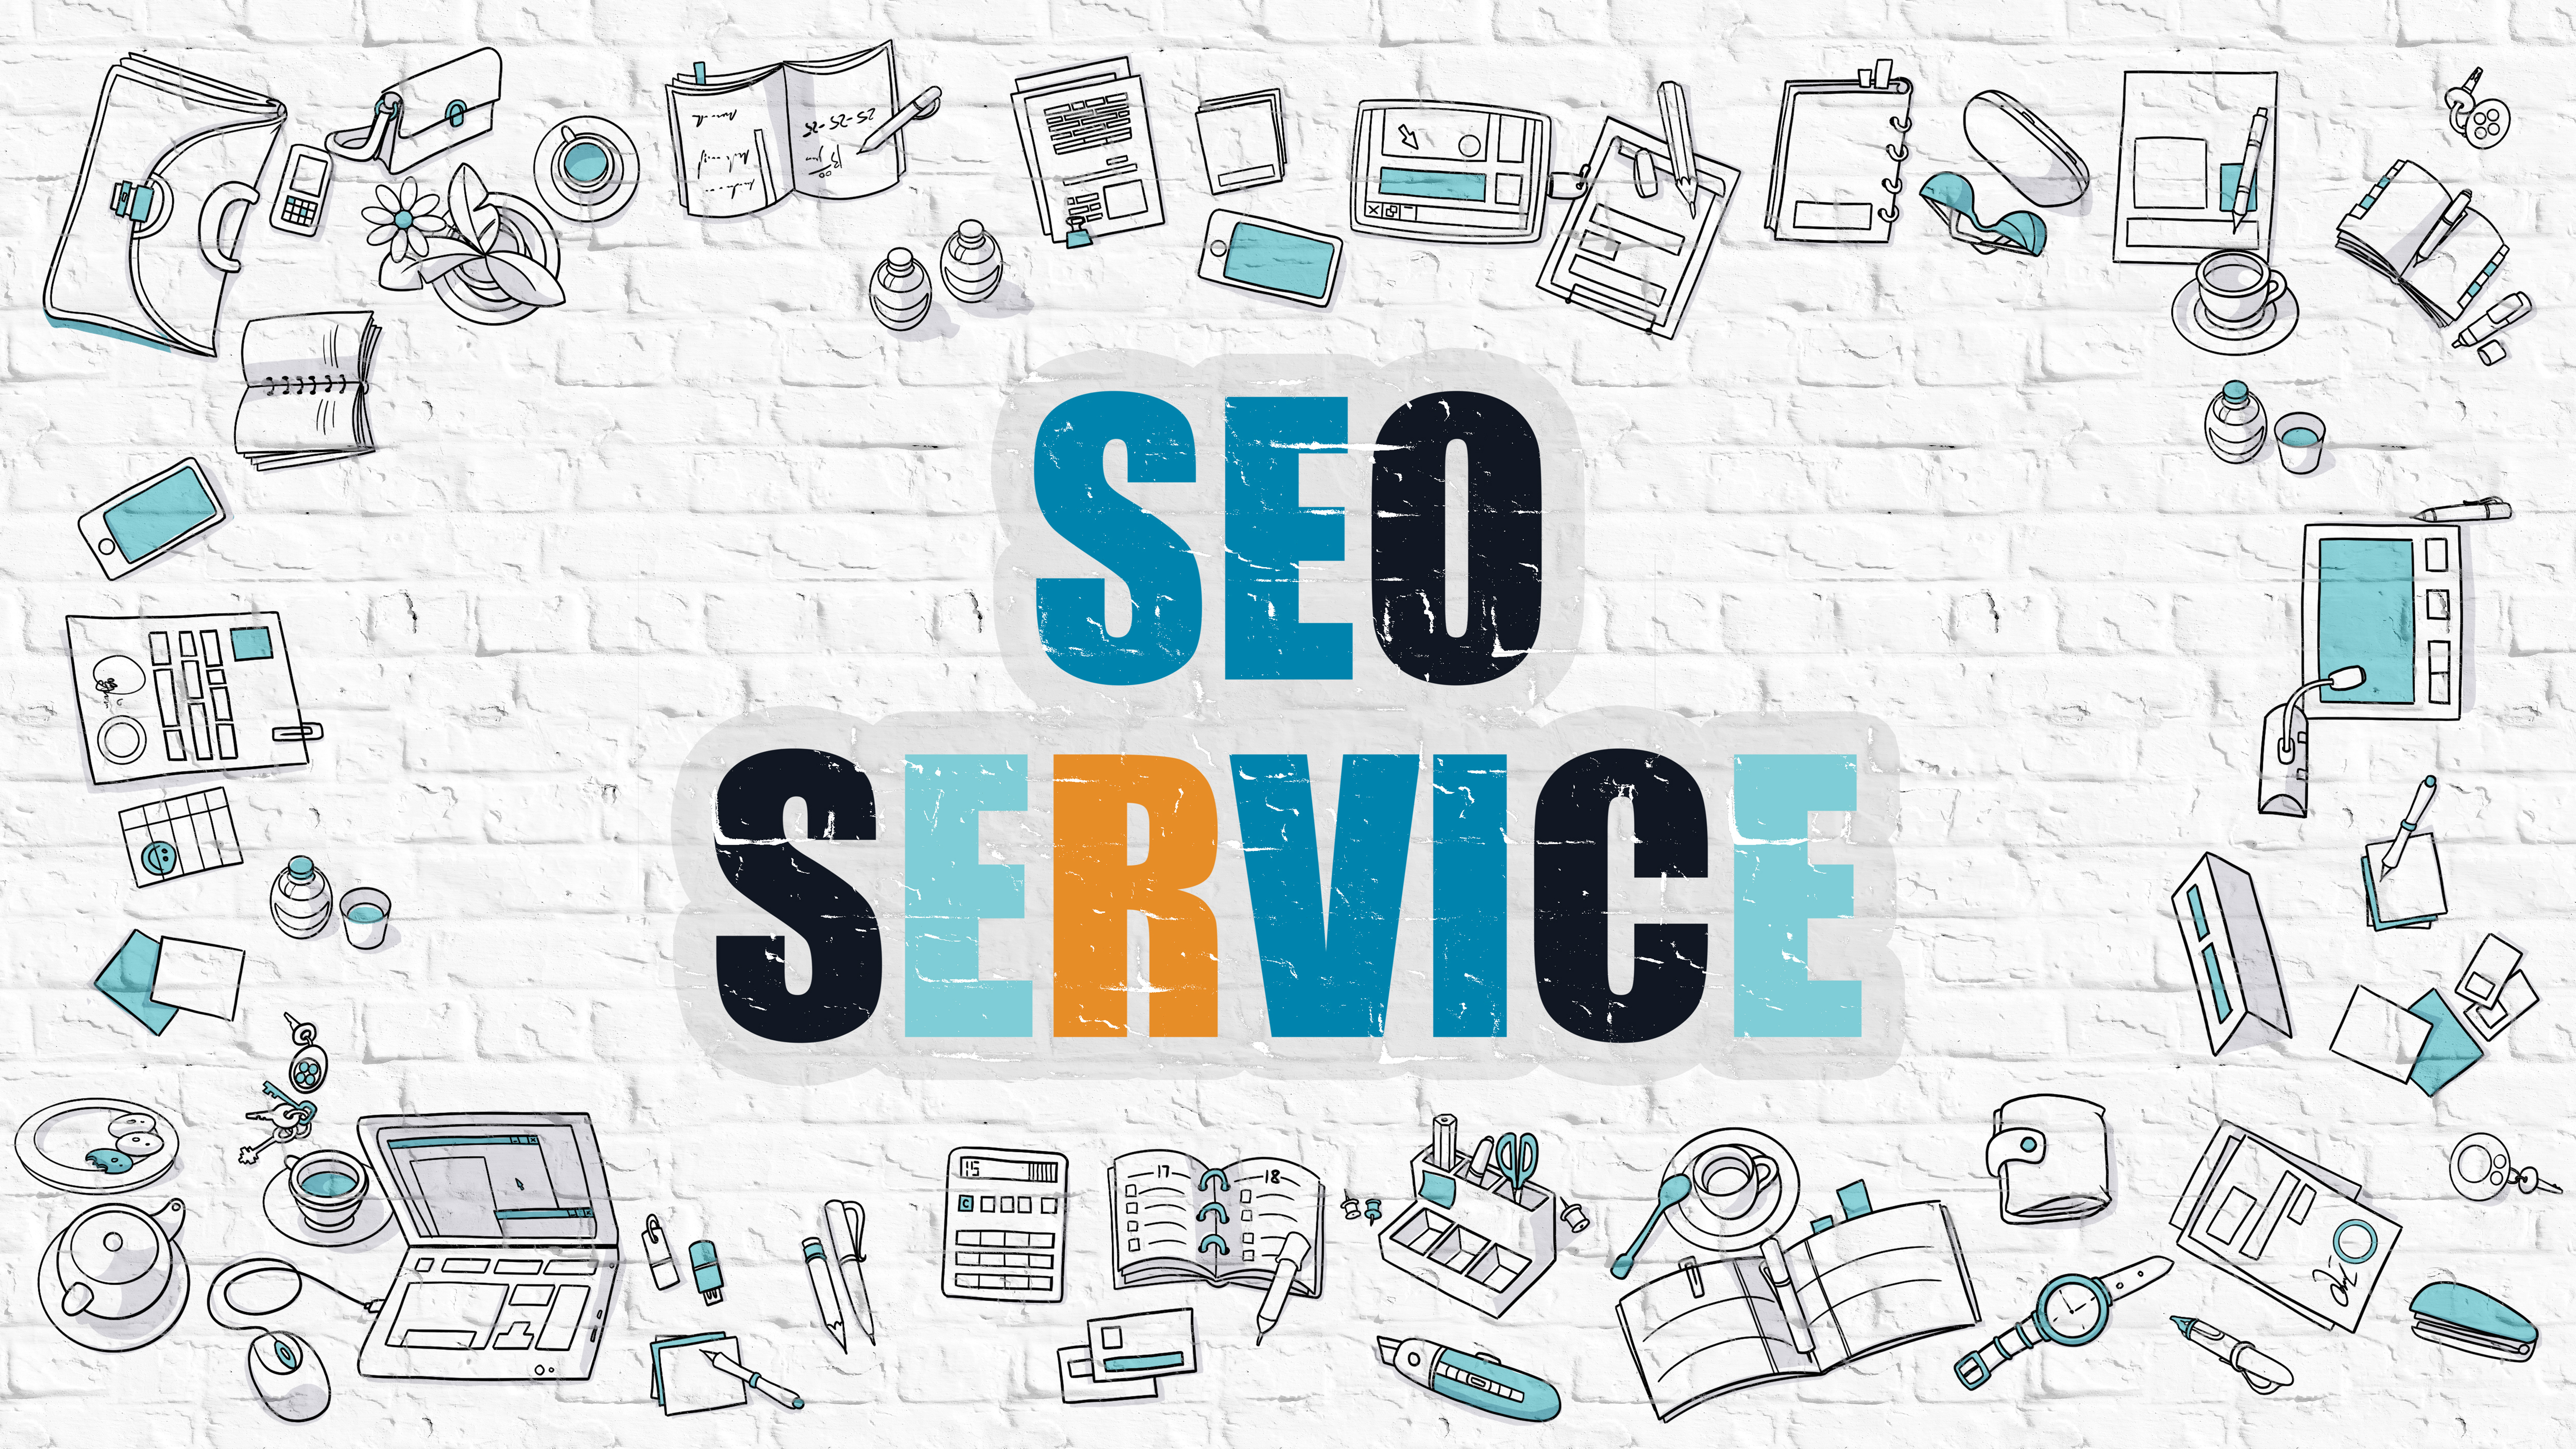 Best SEO Melbourne Agency: To reveal every secret of having great presence for business online